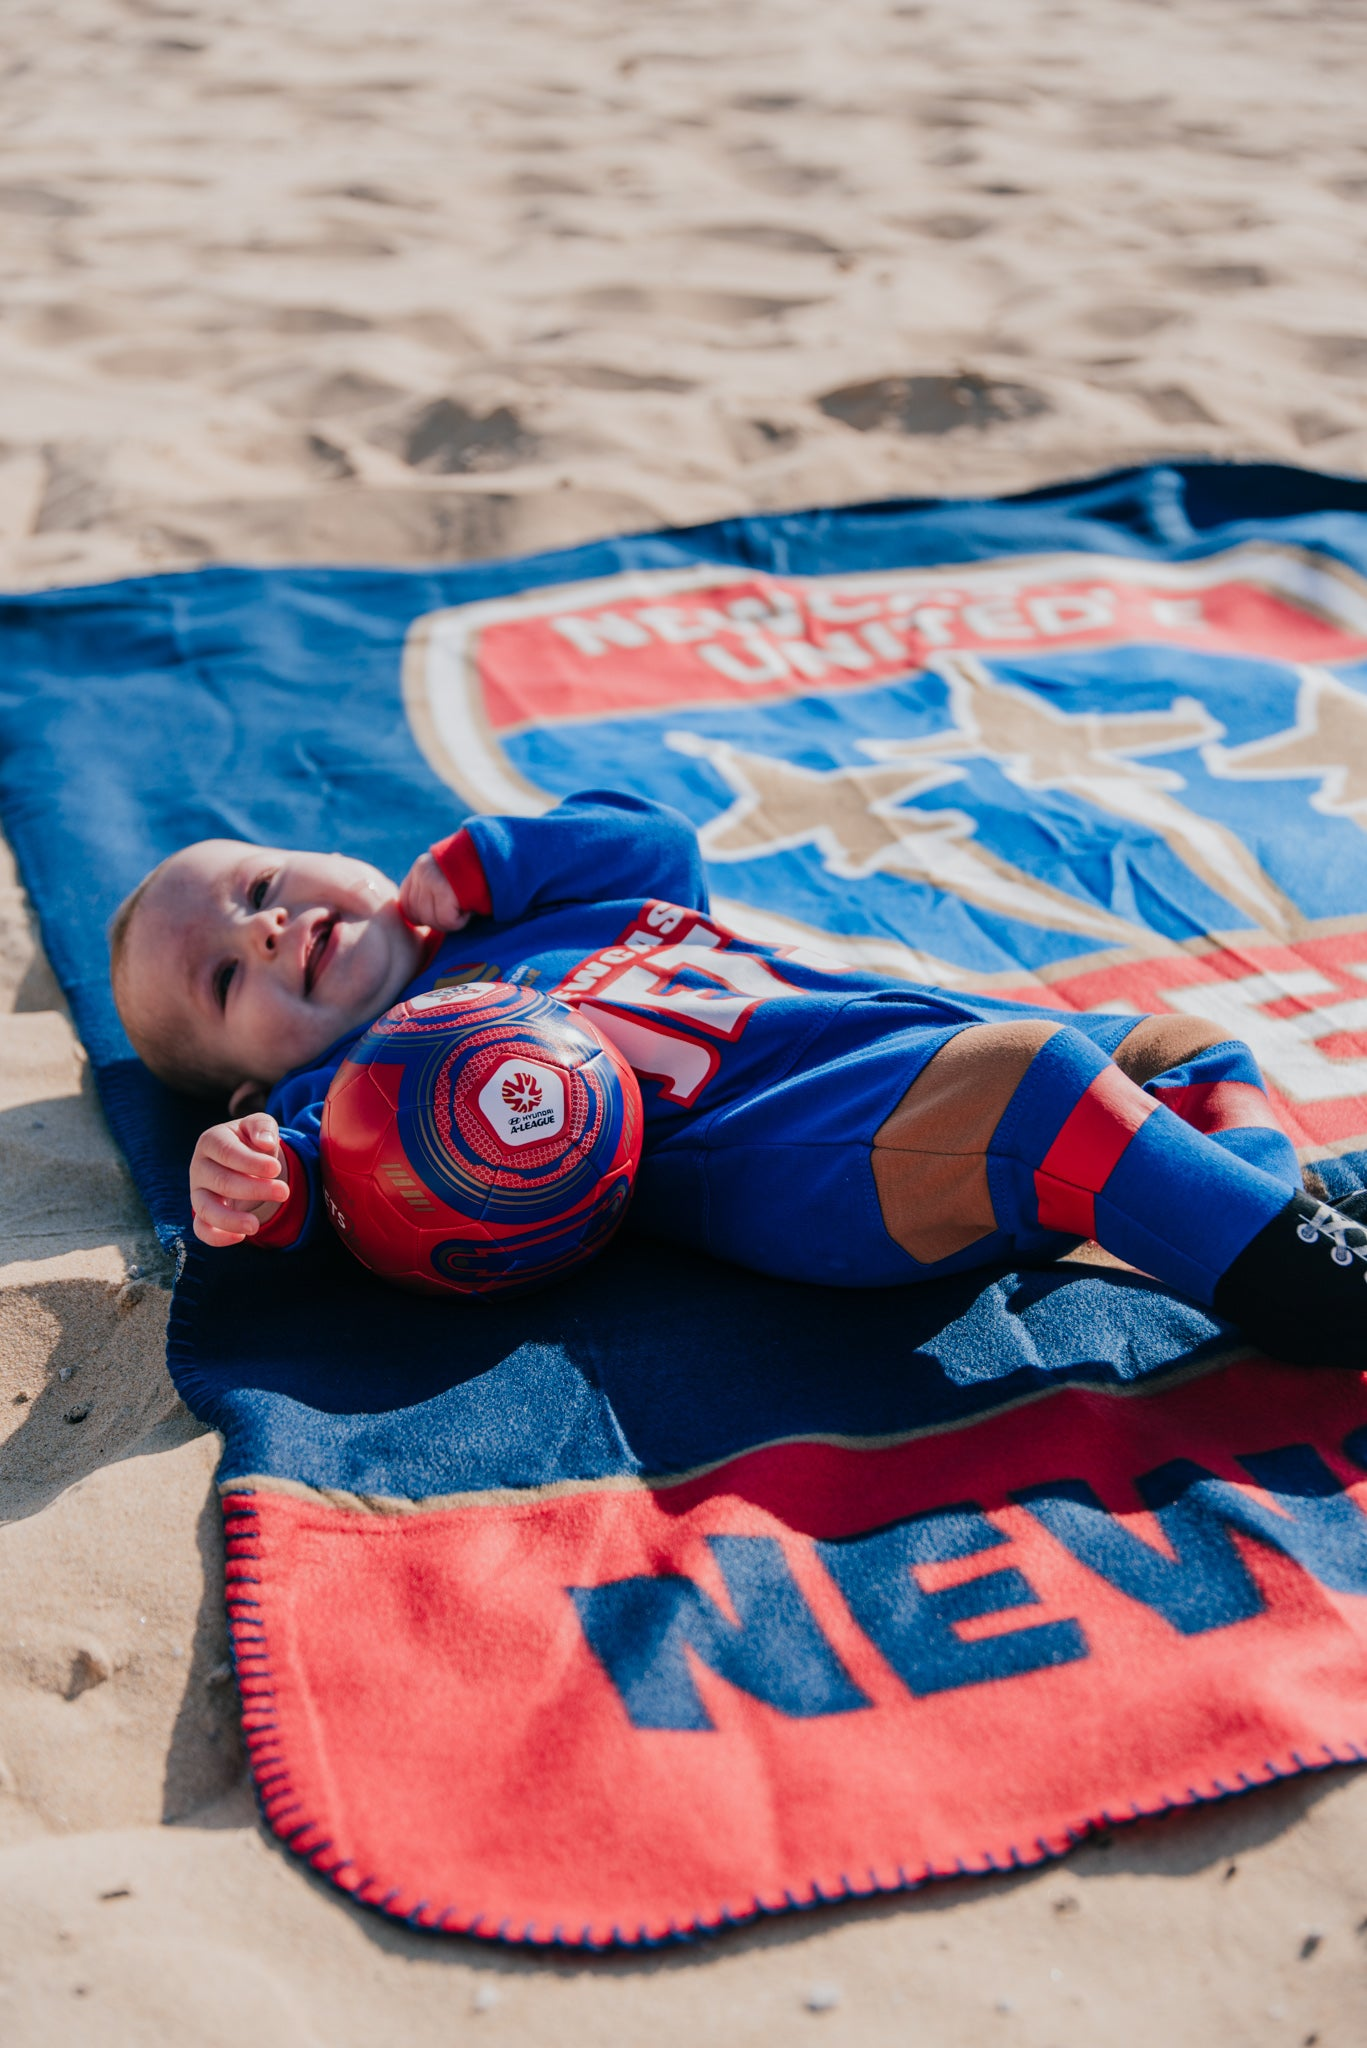 NEWCASTLE JETS FOOTYSUIT - INFANT YOUTH